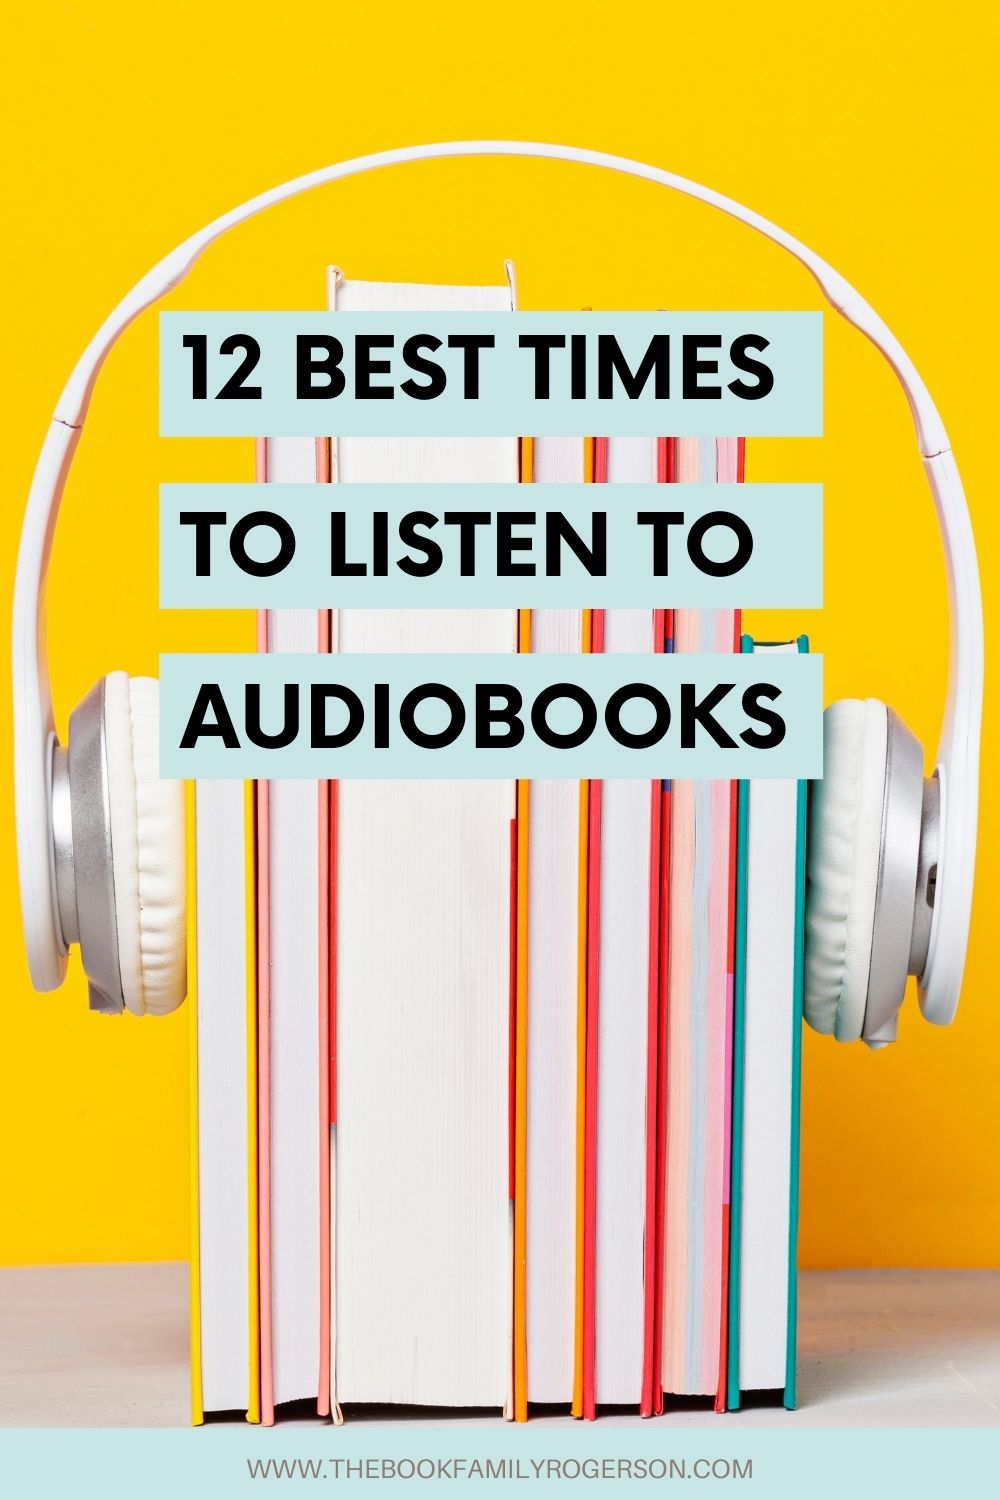 A row of books enclosed by headphones with the title 12 Best Times to Listen to Audiobooks.